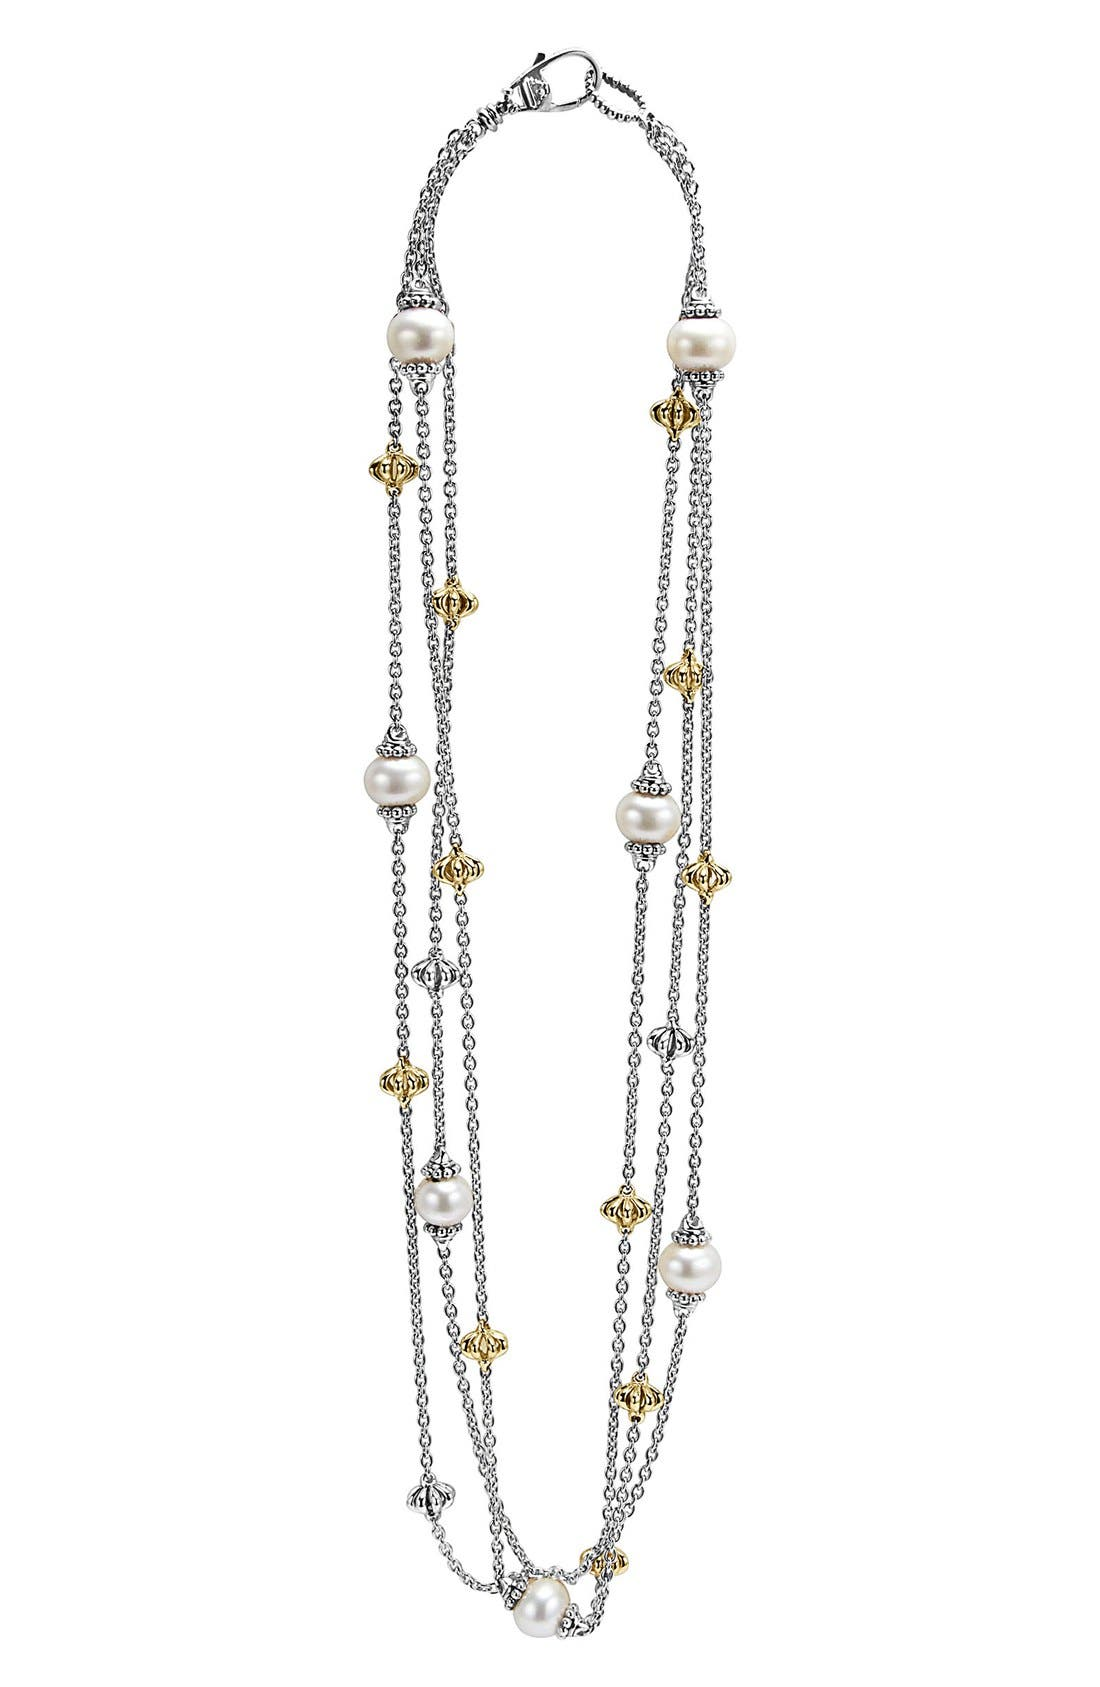 Main Image - LAGOS 'Luna' Pearl Three-Strand Link Necklace